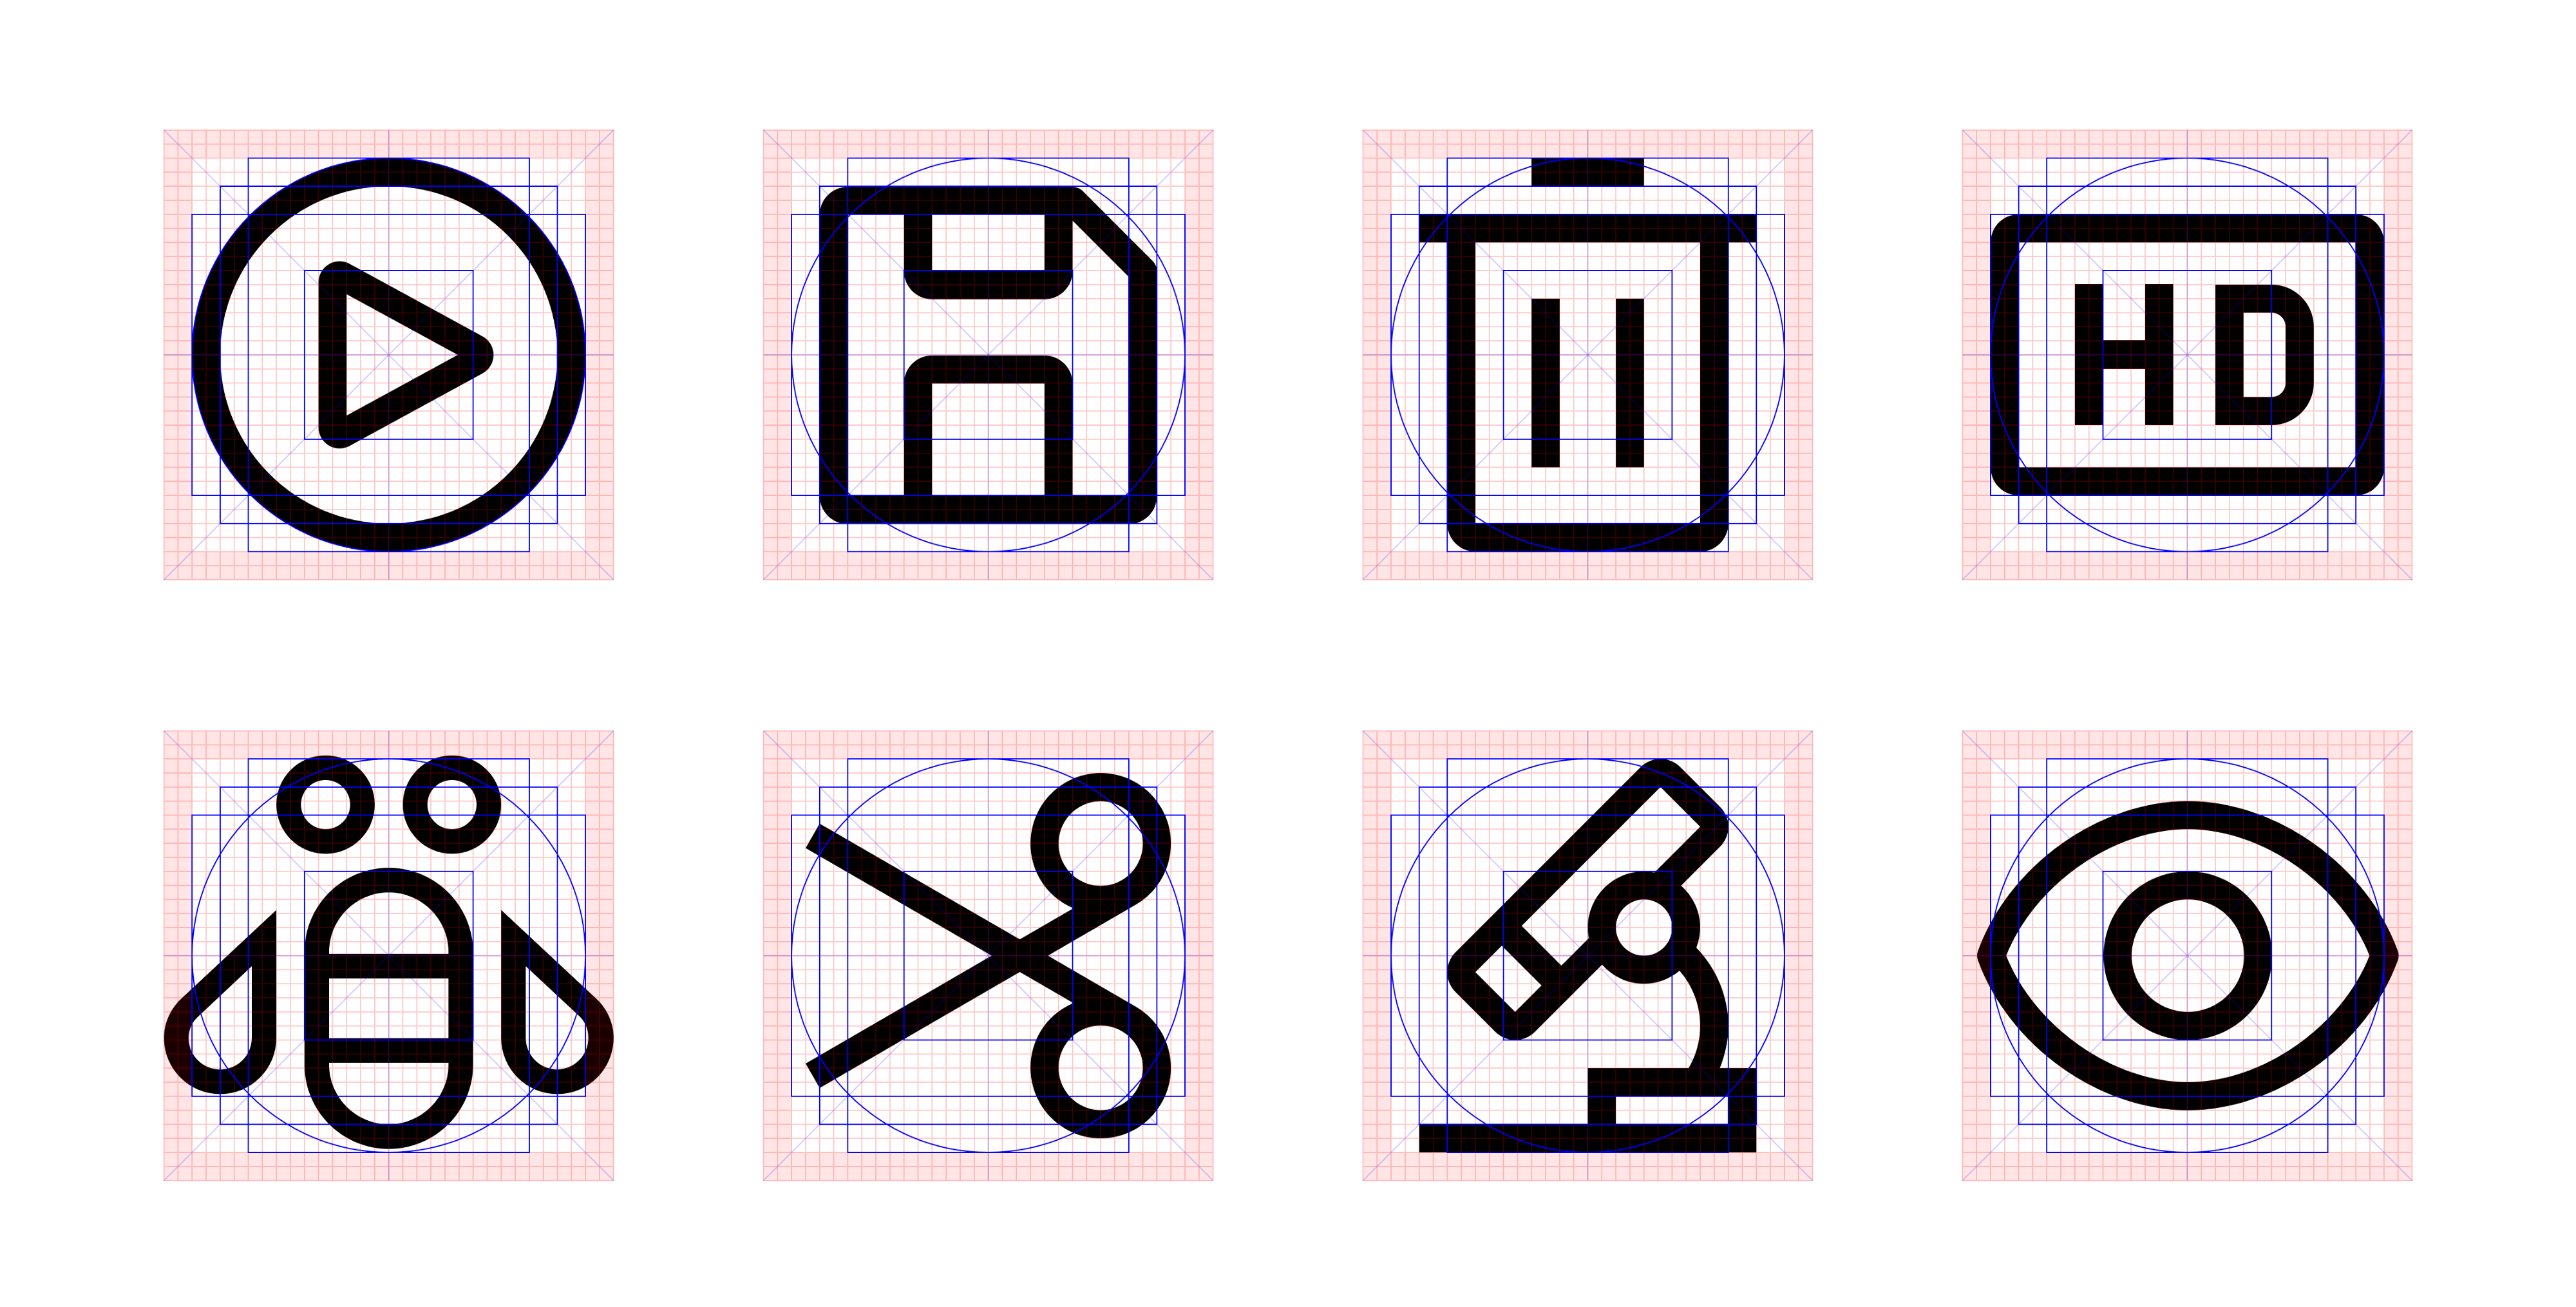 IBM icon against their grid (left to right, top to bottom): Play, Save, Delete, HD, Bee, Cut, Microscope, and Eye